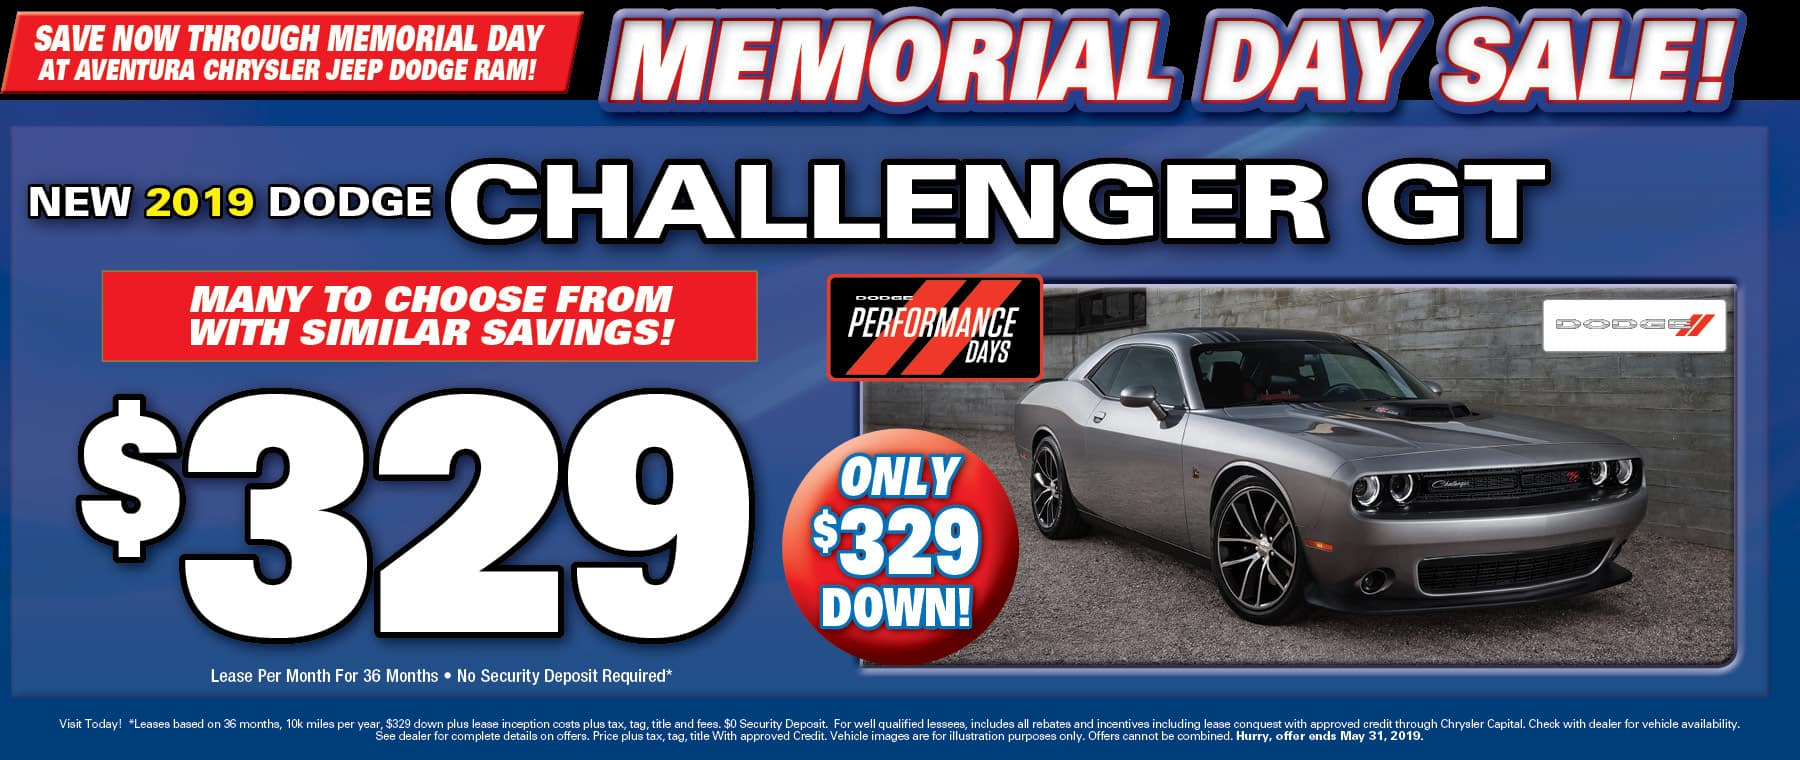 New Dodge Challenger GTs!